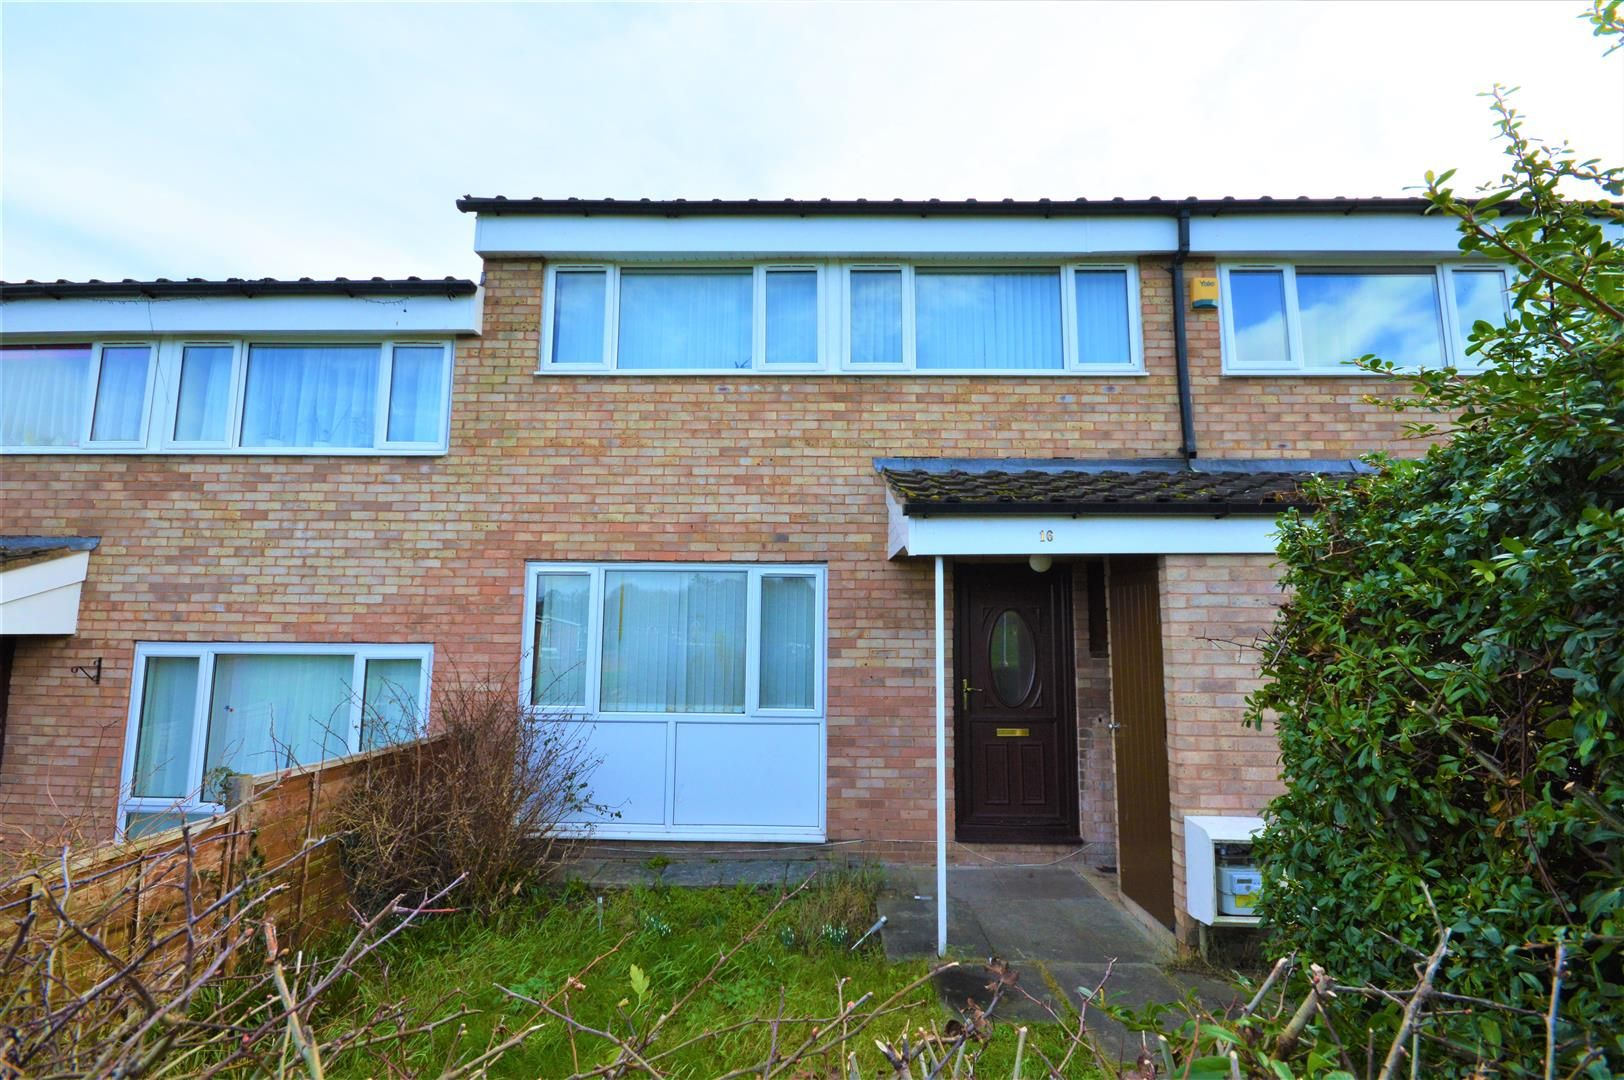 3 bed terraced for sale in Hereford  - Property Image 1